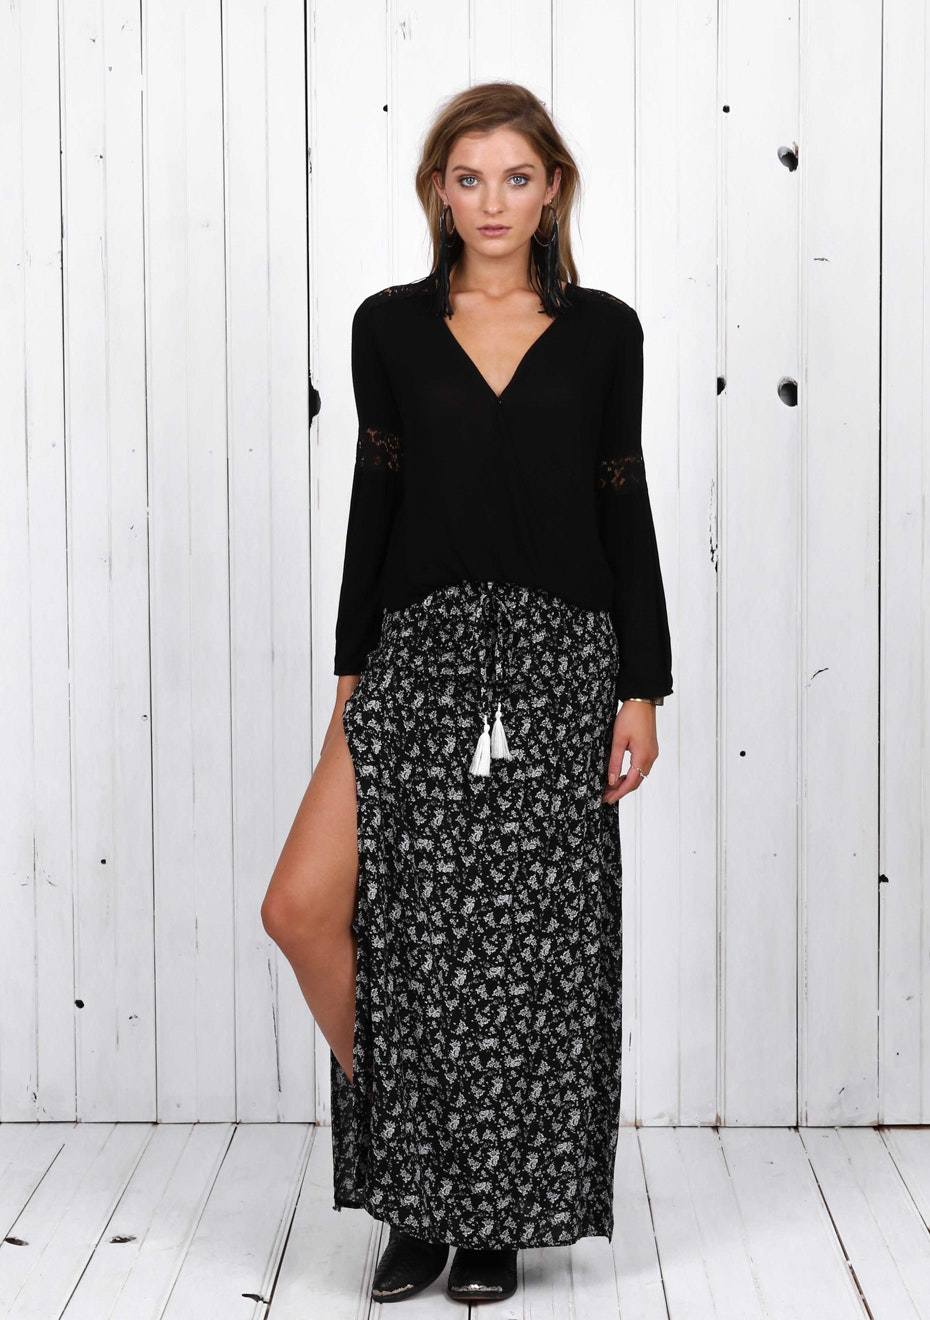 Madison - SONGBIRD MAXI SKIRT - BLACK PRINT